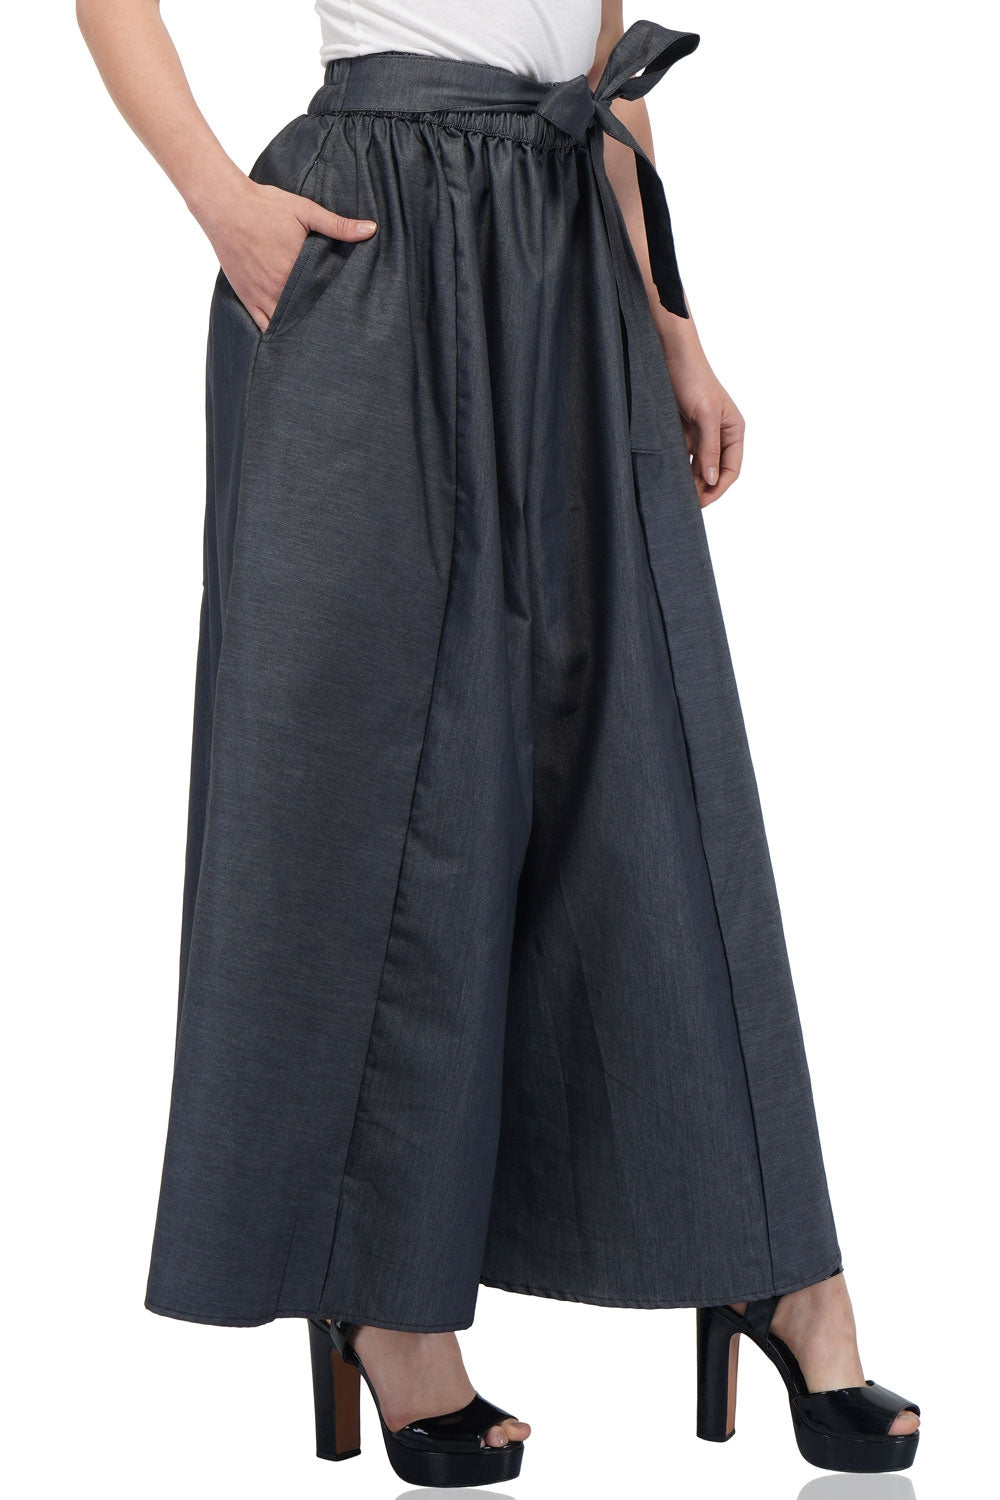 Smoked Grey Denim Palazzo Pants